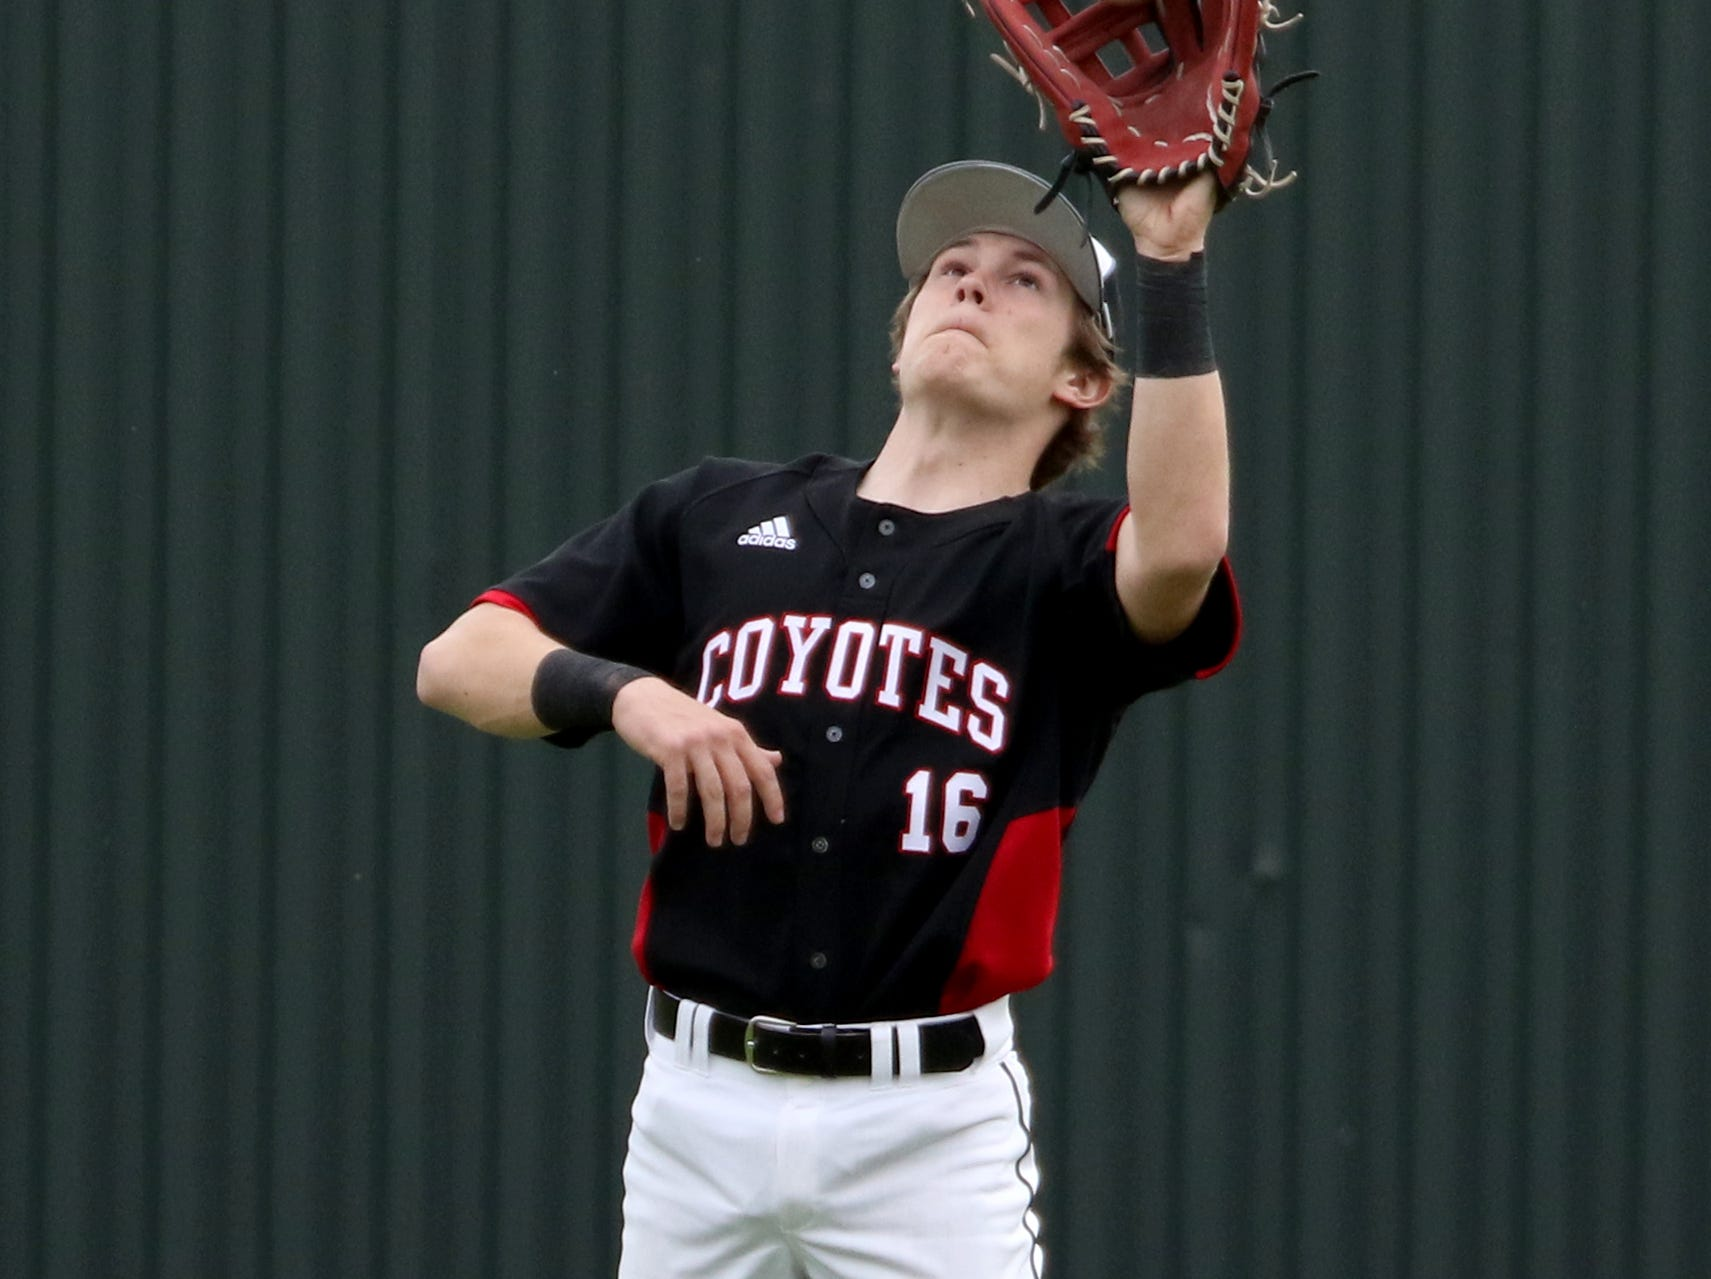 Wichita Falls High School's Matthew Terry catches the flyball in the game against Holliday Friday, March 8, 2019, in Bowie for the Walker Stallcup Tournament.